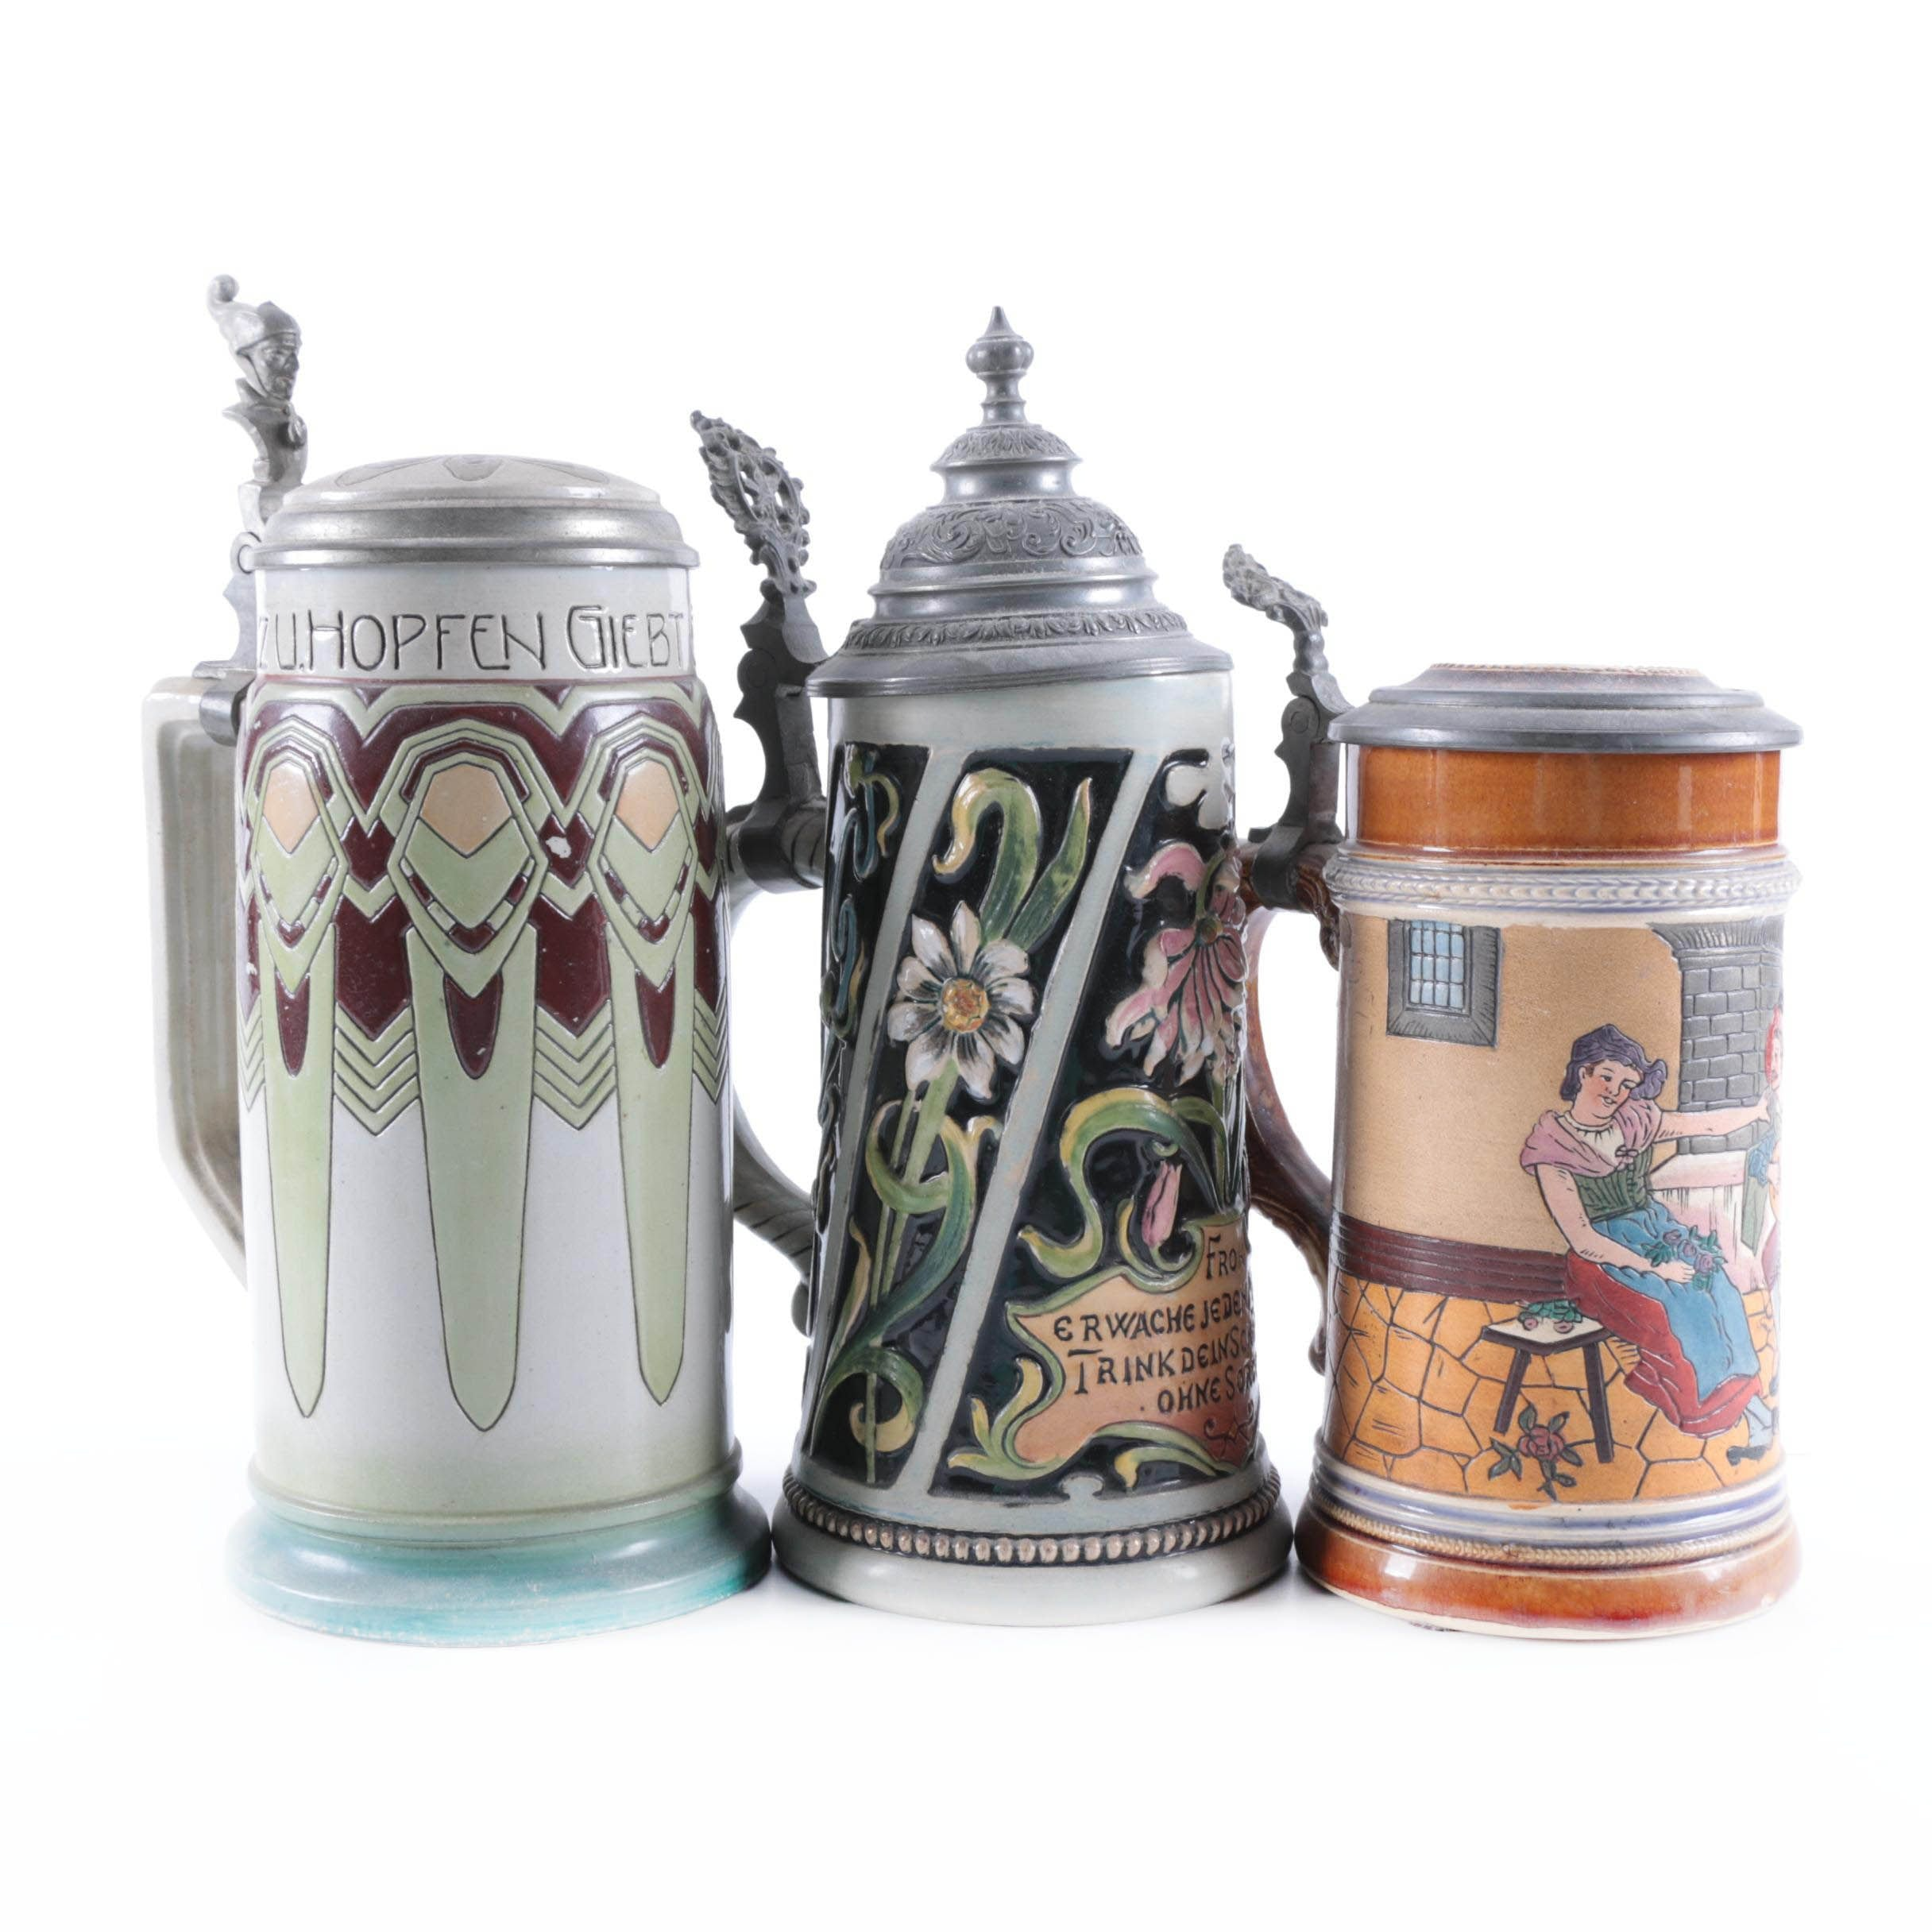 Vintage German Beer Steins, Including Merkelbach & Wick